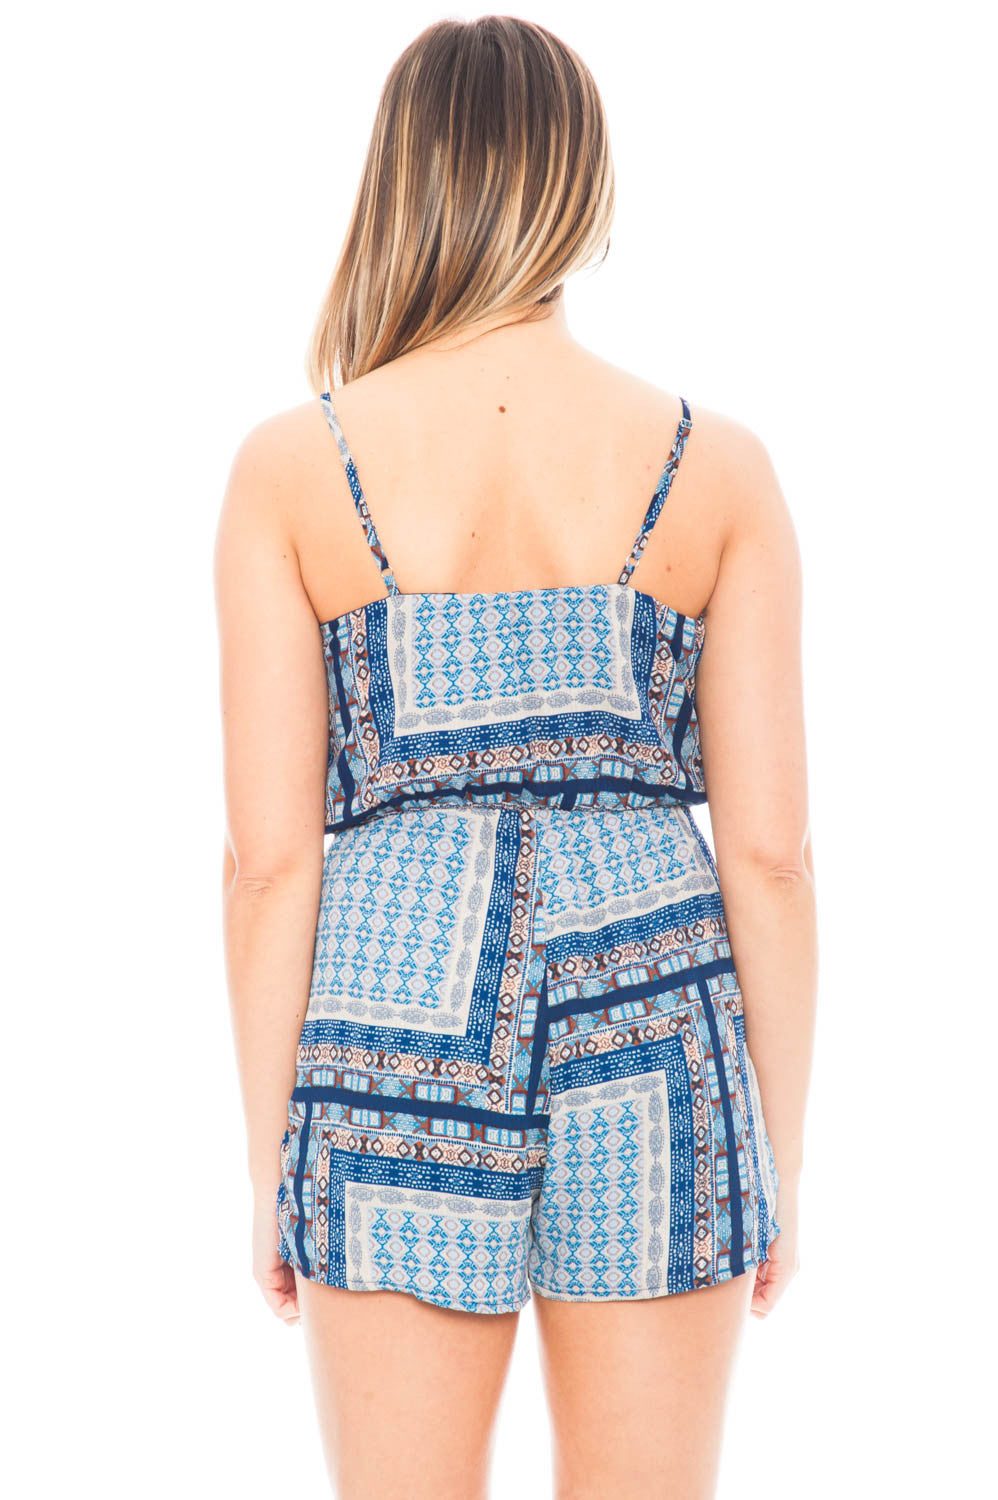 Romper - Printed V Neck Romper with Pockets by Everly